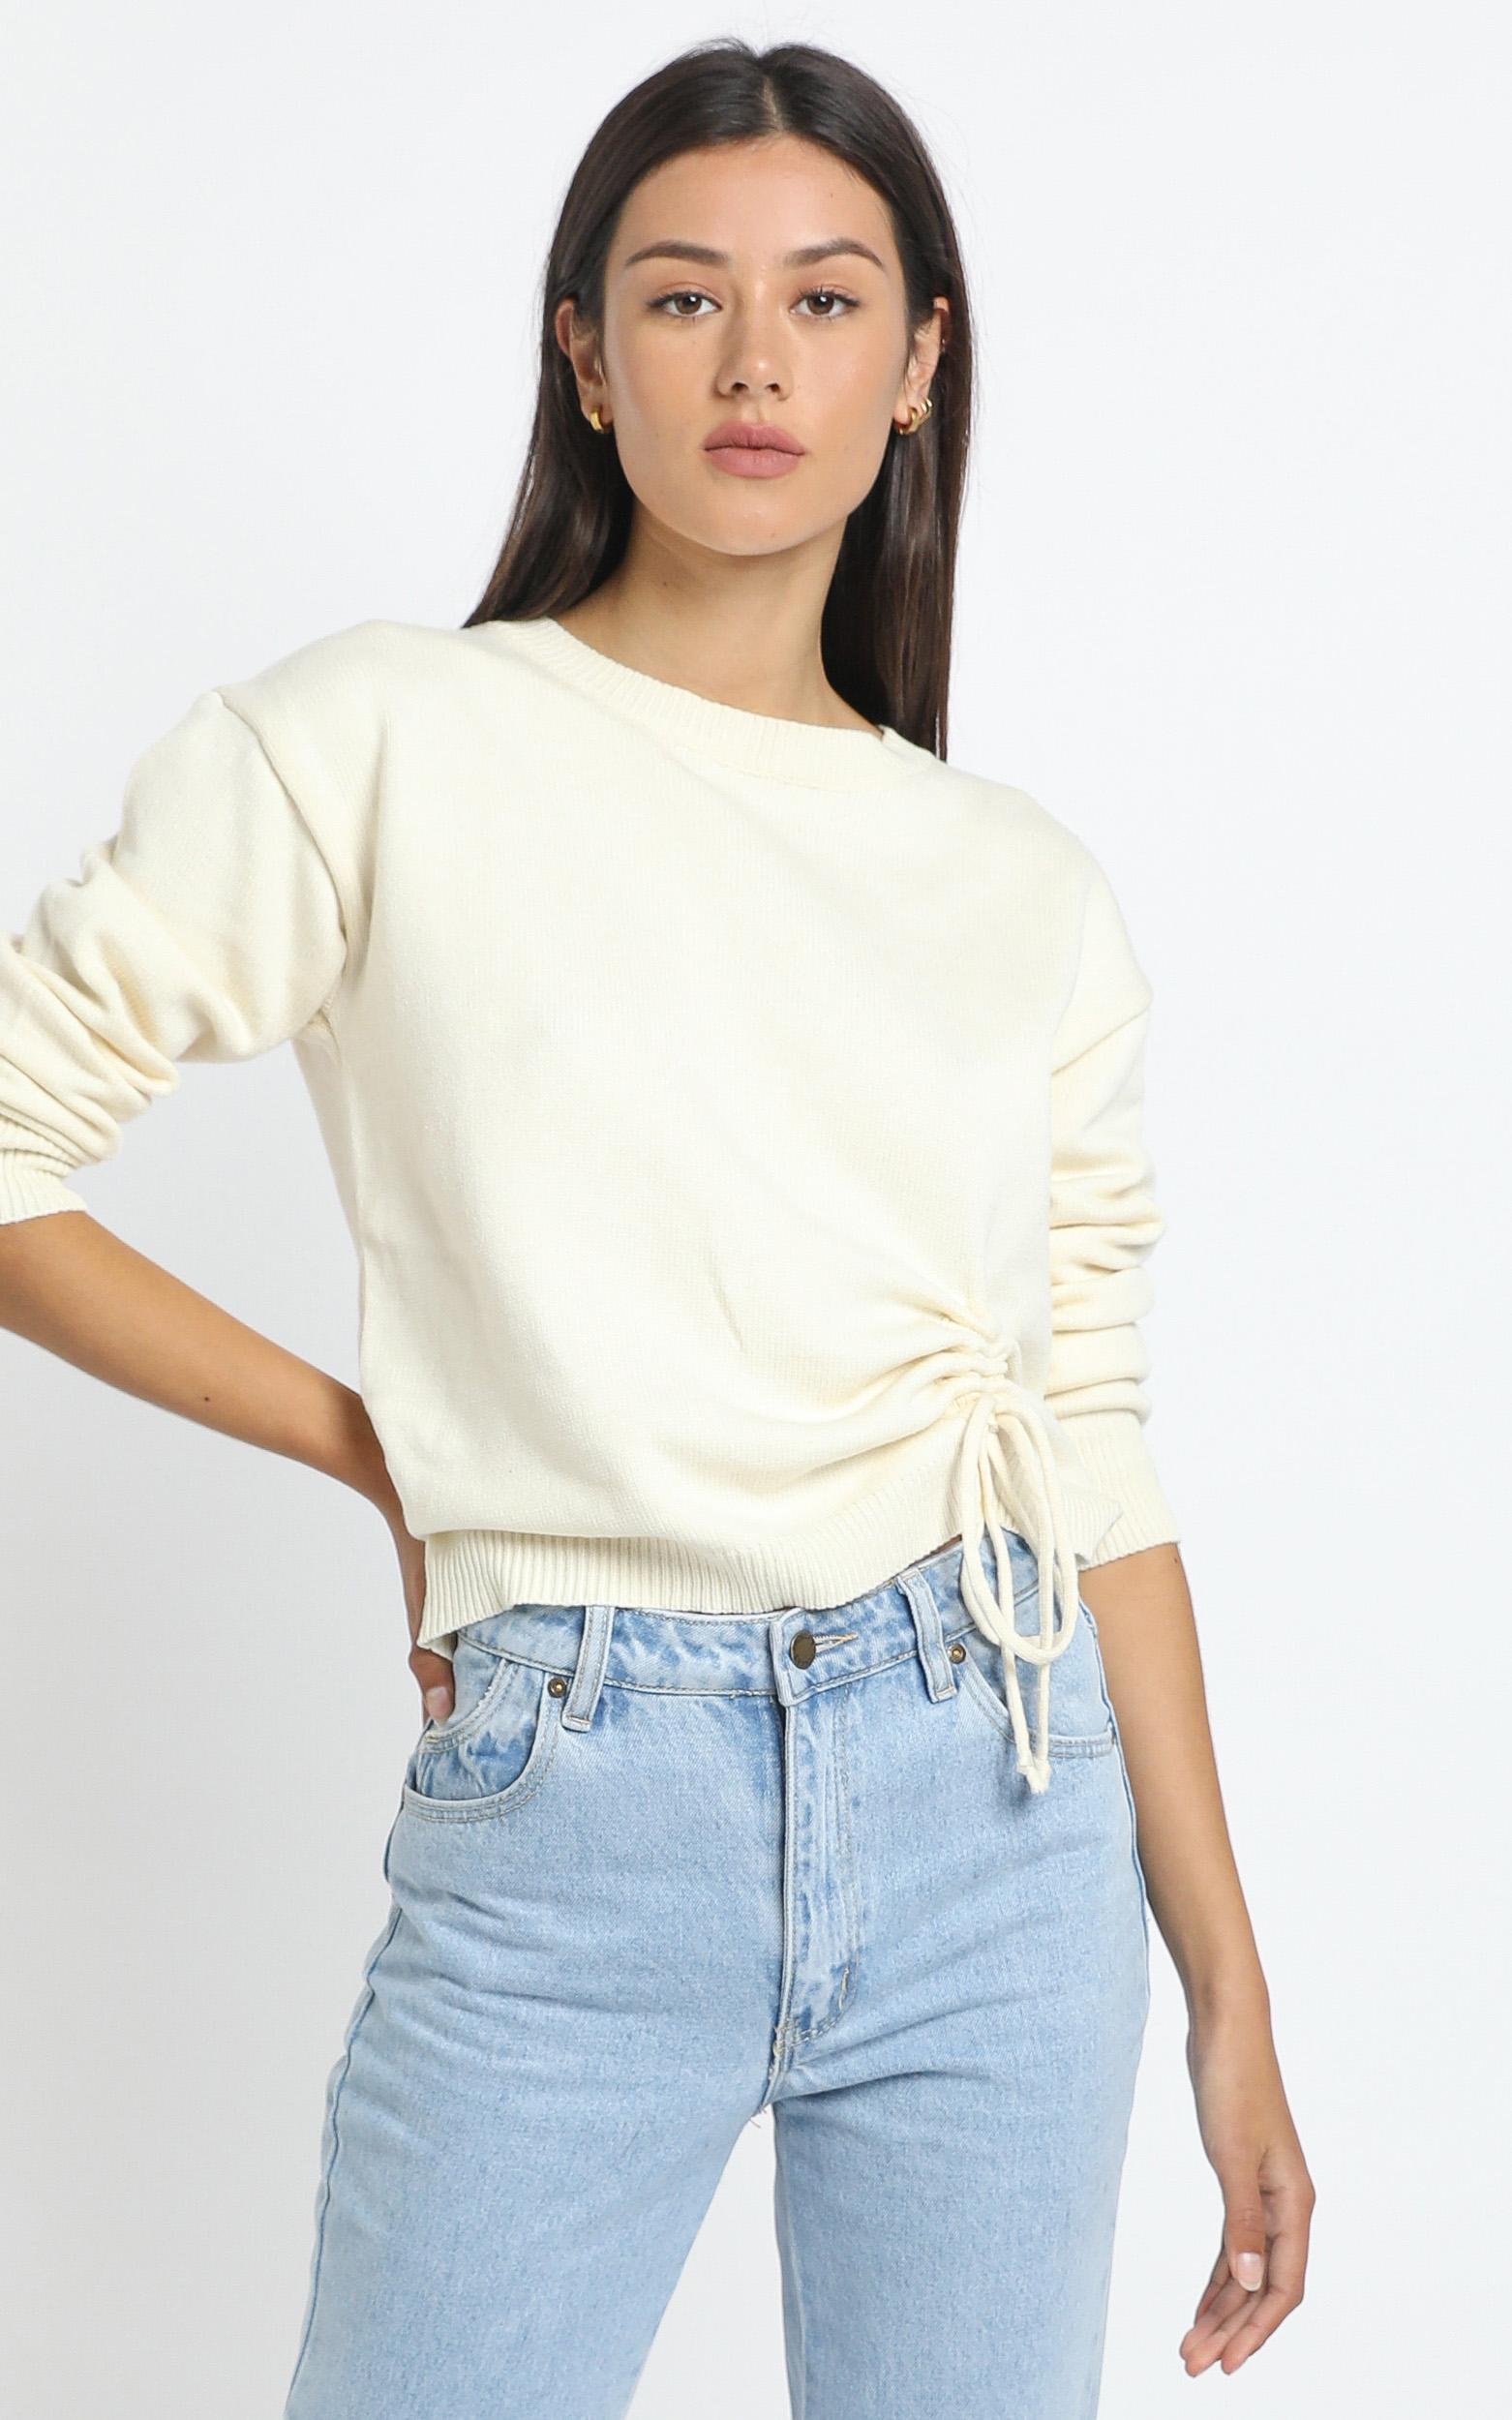 Carina Knit in White - L, White, hi-res image number null